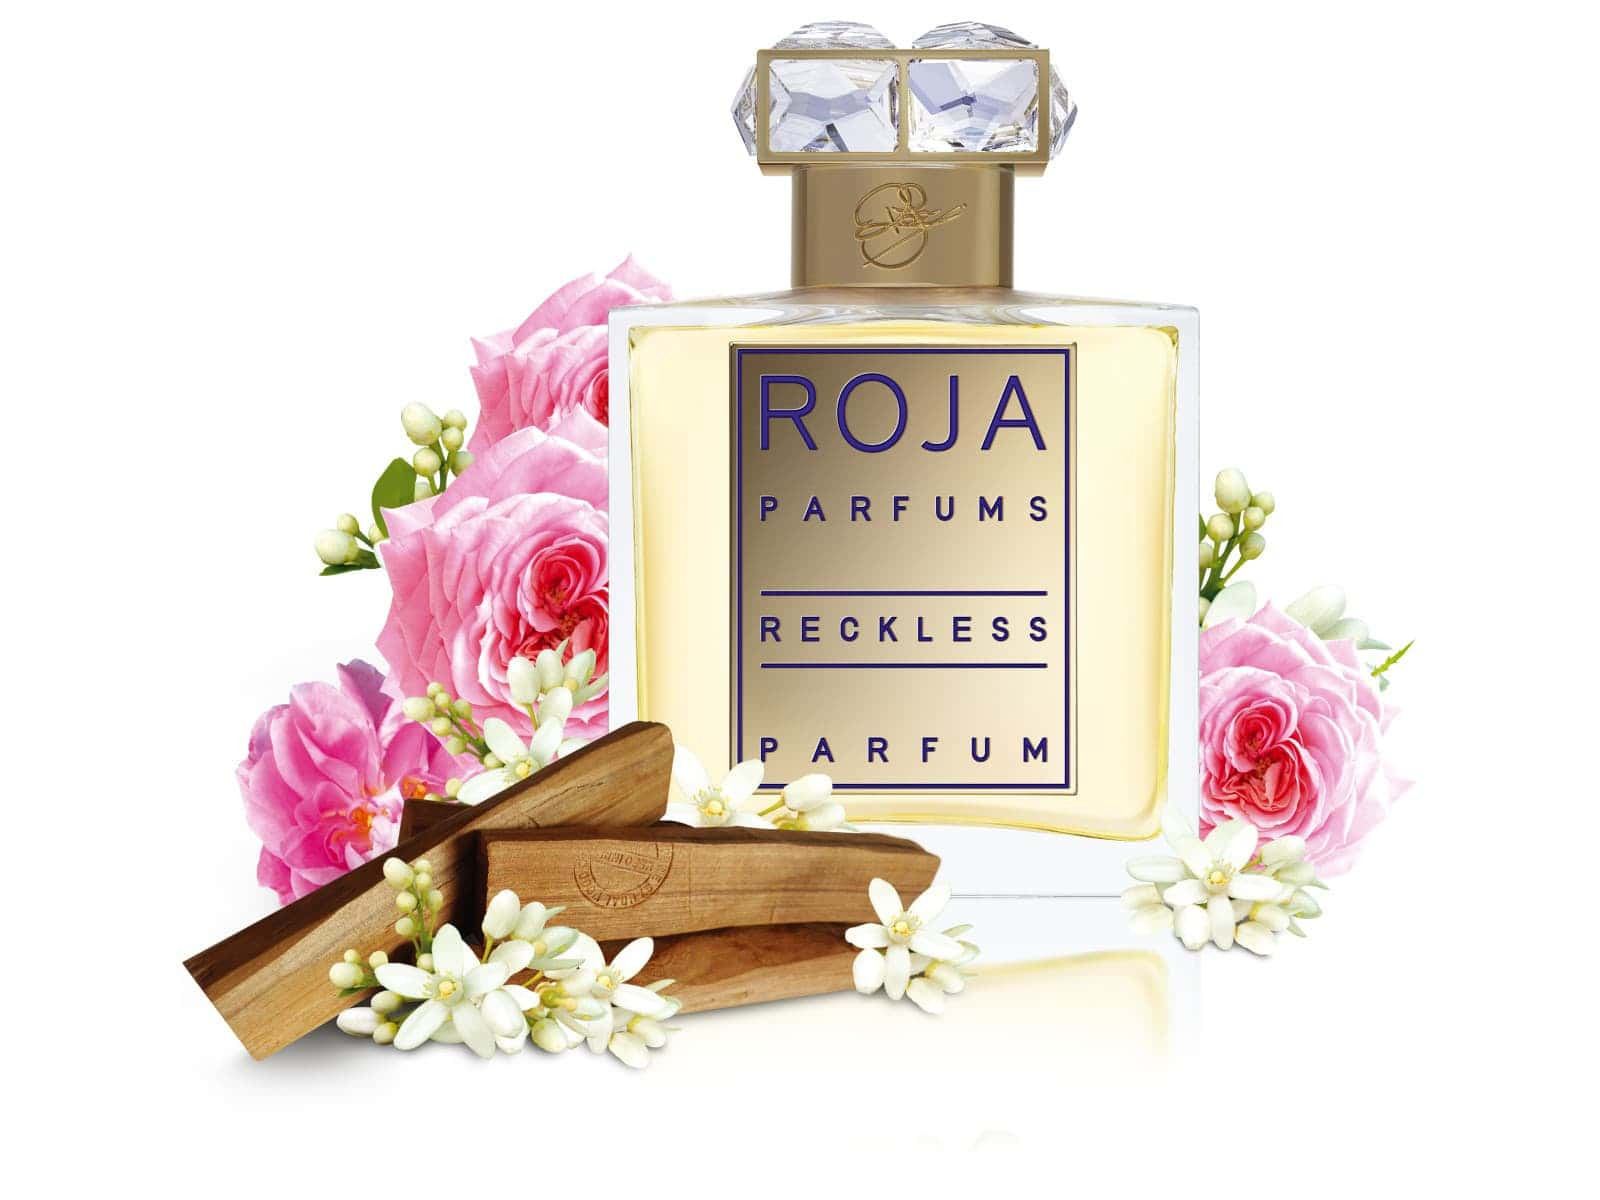 عطر Roja Reckless